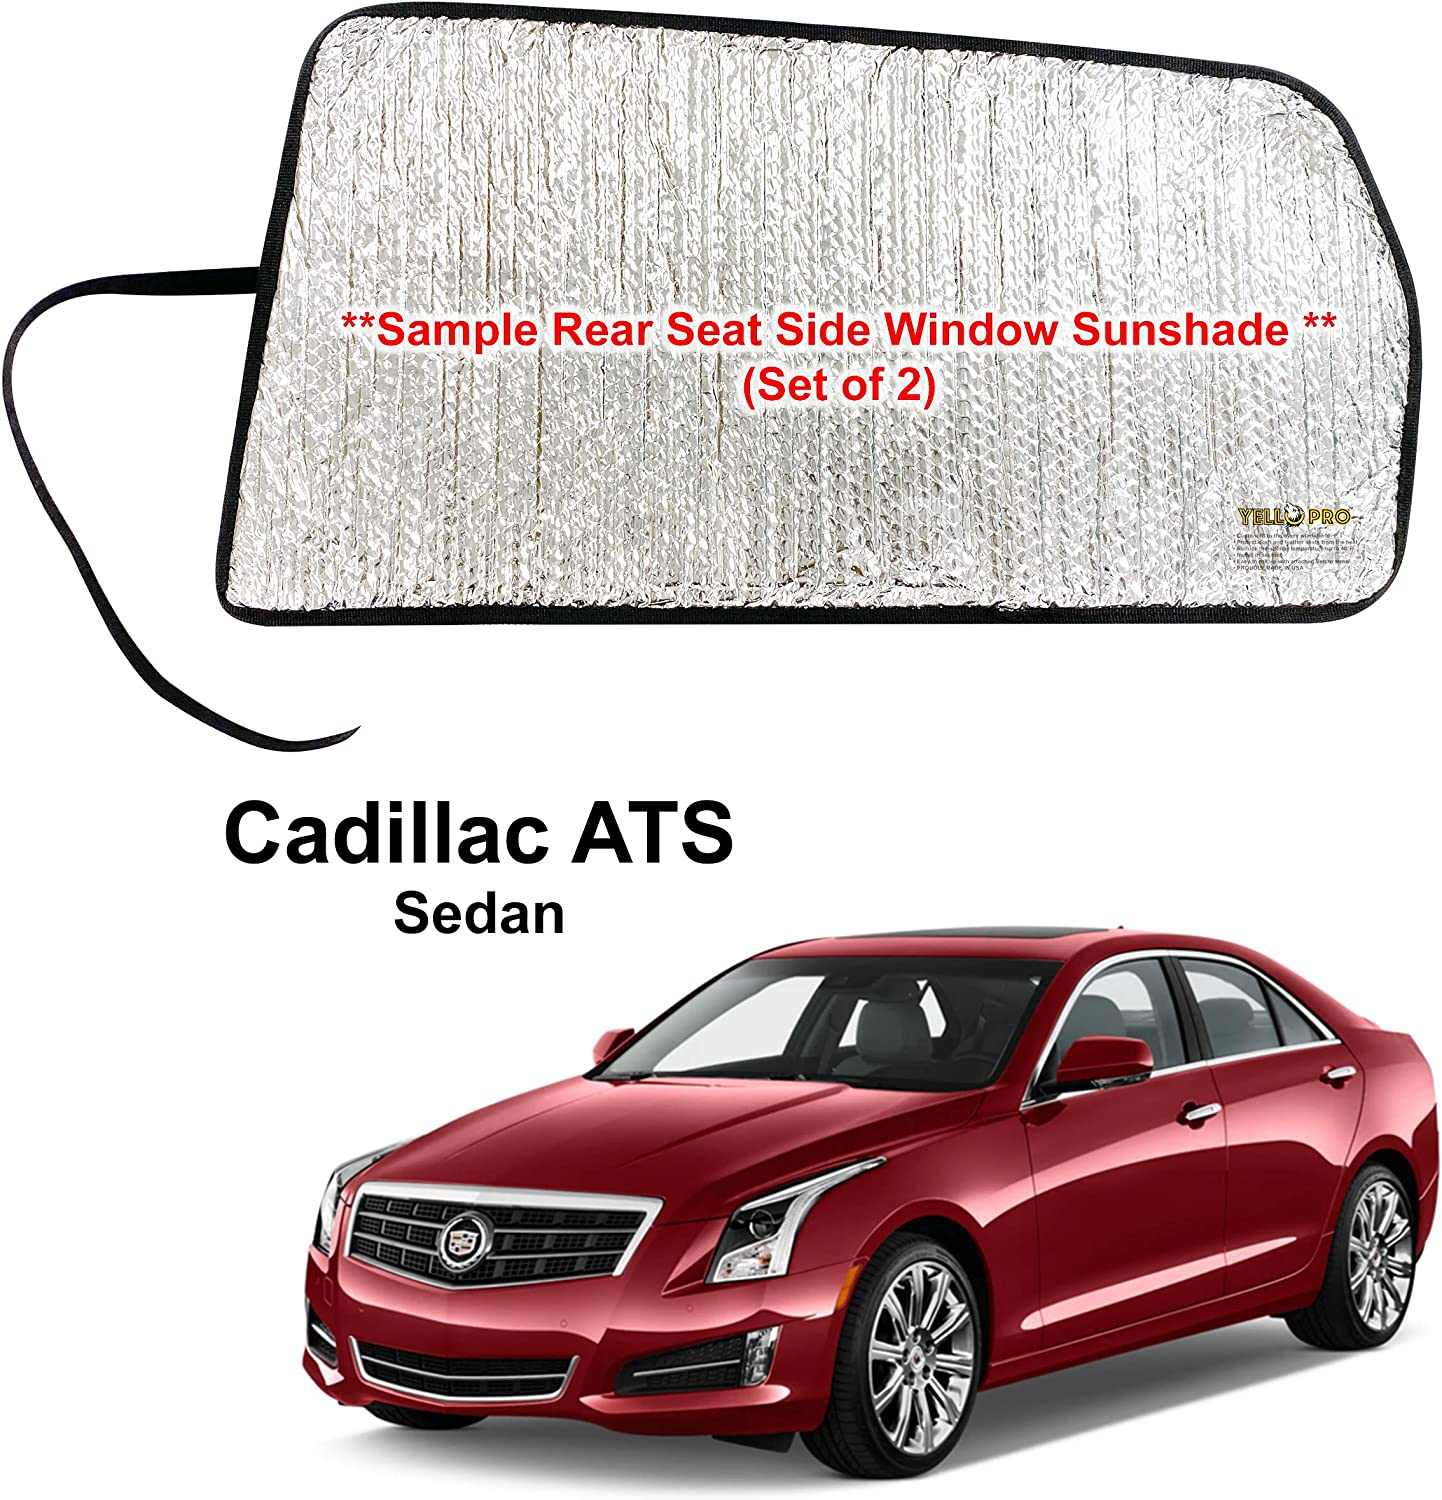 All items in the store YelloPro Auto Side Window Ranking TOP3 Rear Seat 2013 Custom for Sunshade Fit